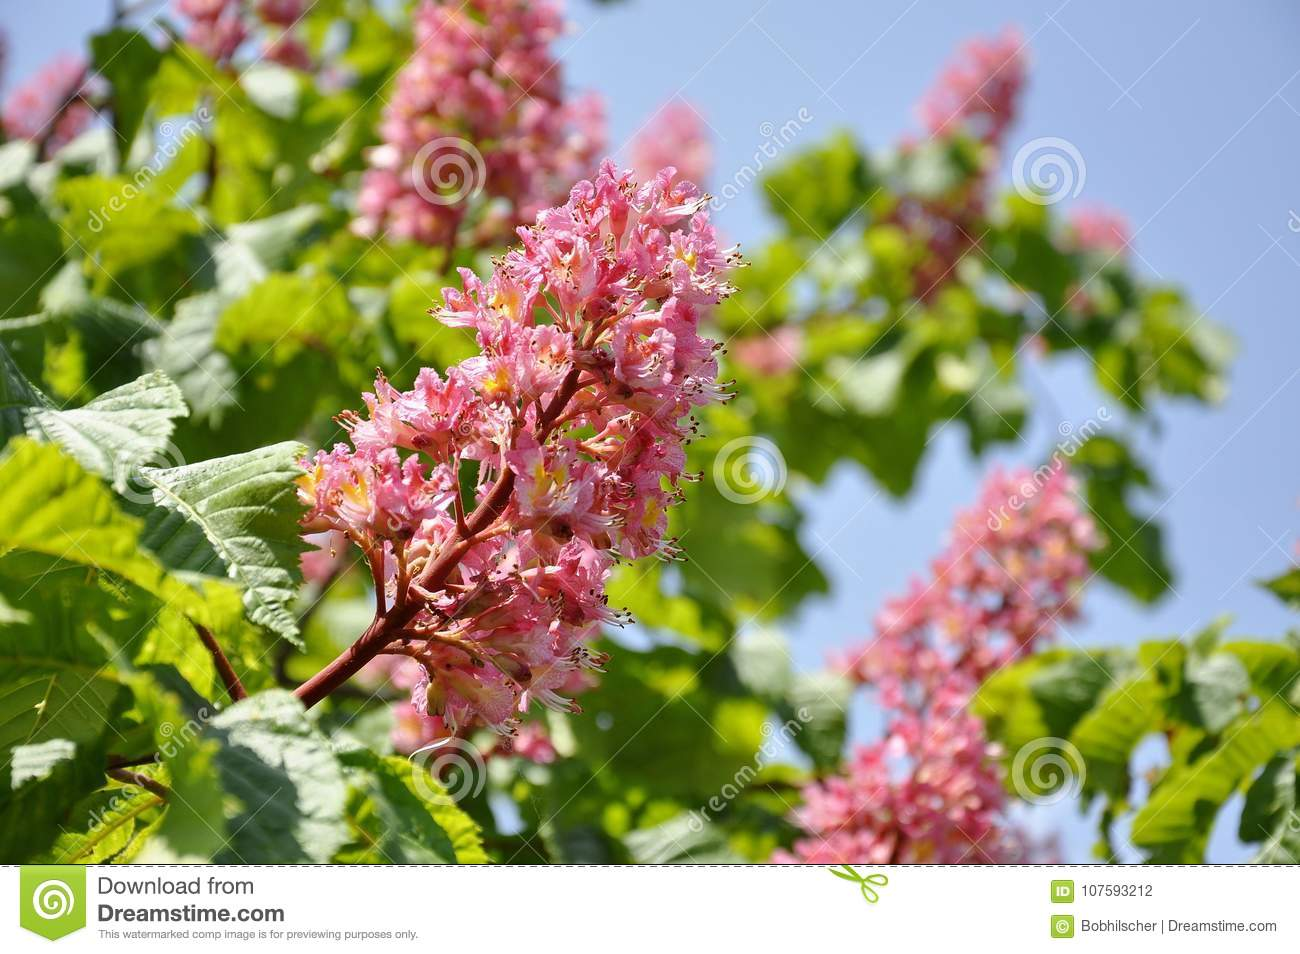 Pink flowers on red horse chestnut tree stock photo image of pink flowers on a red horse chestnut tree in ontario canada mightylinksfo